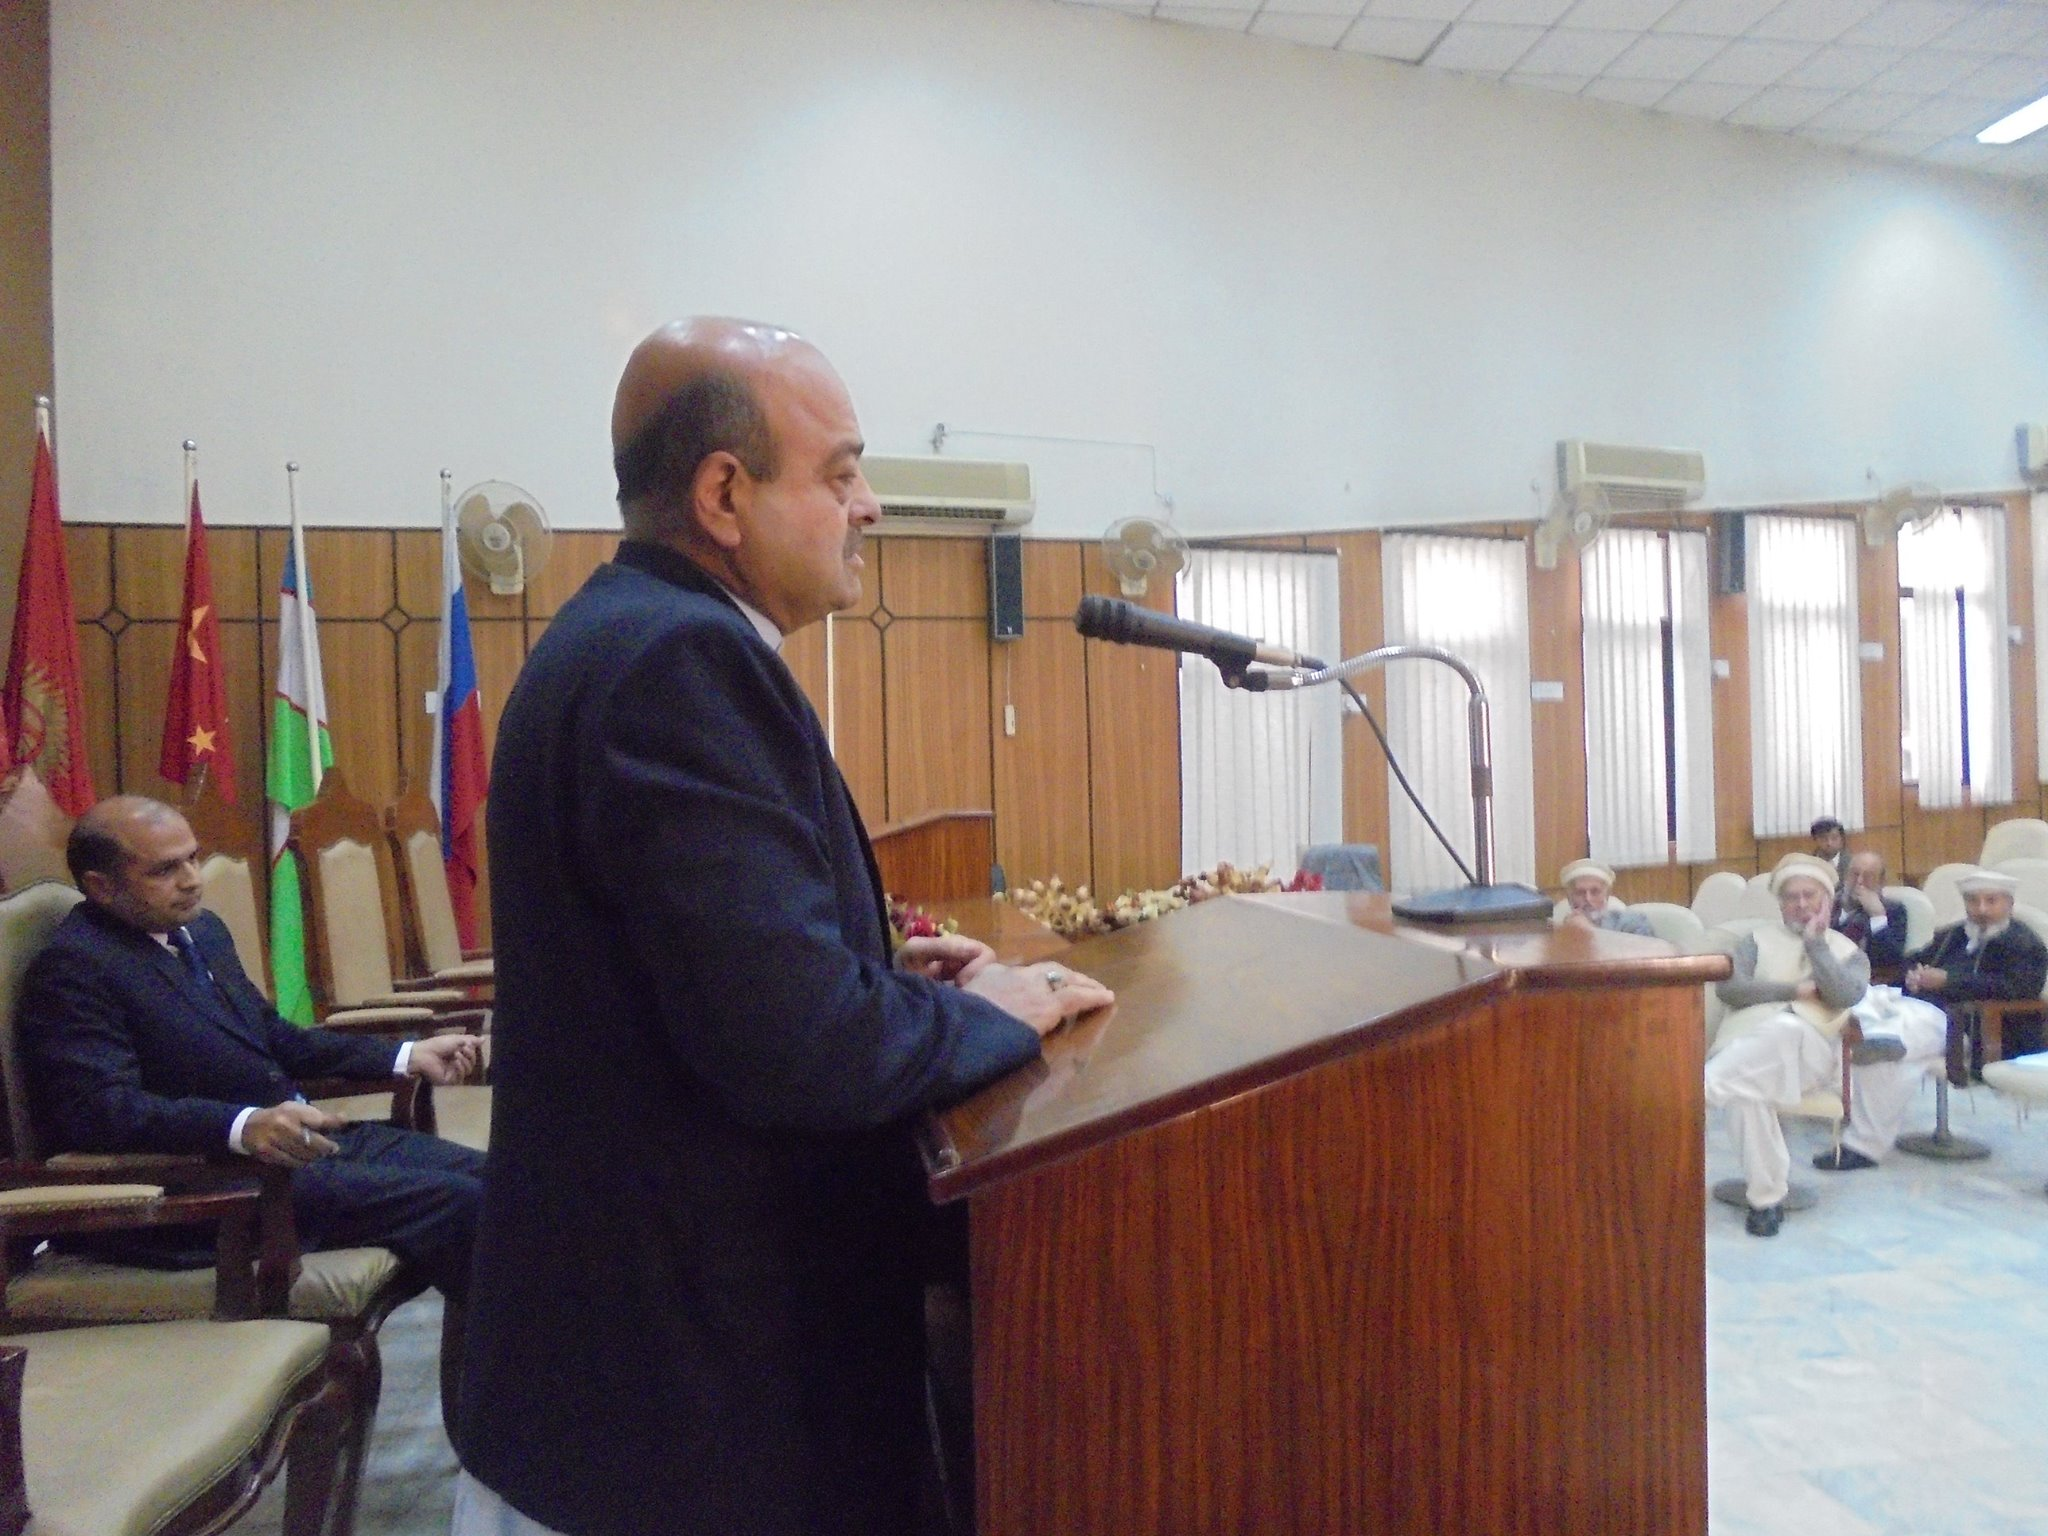 Dean Faculty of Arts and Humanities, Prof. Dr. Syed Minhaj-ul-Hassan